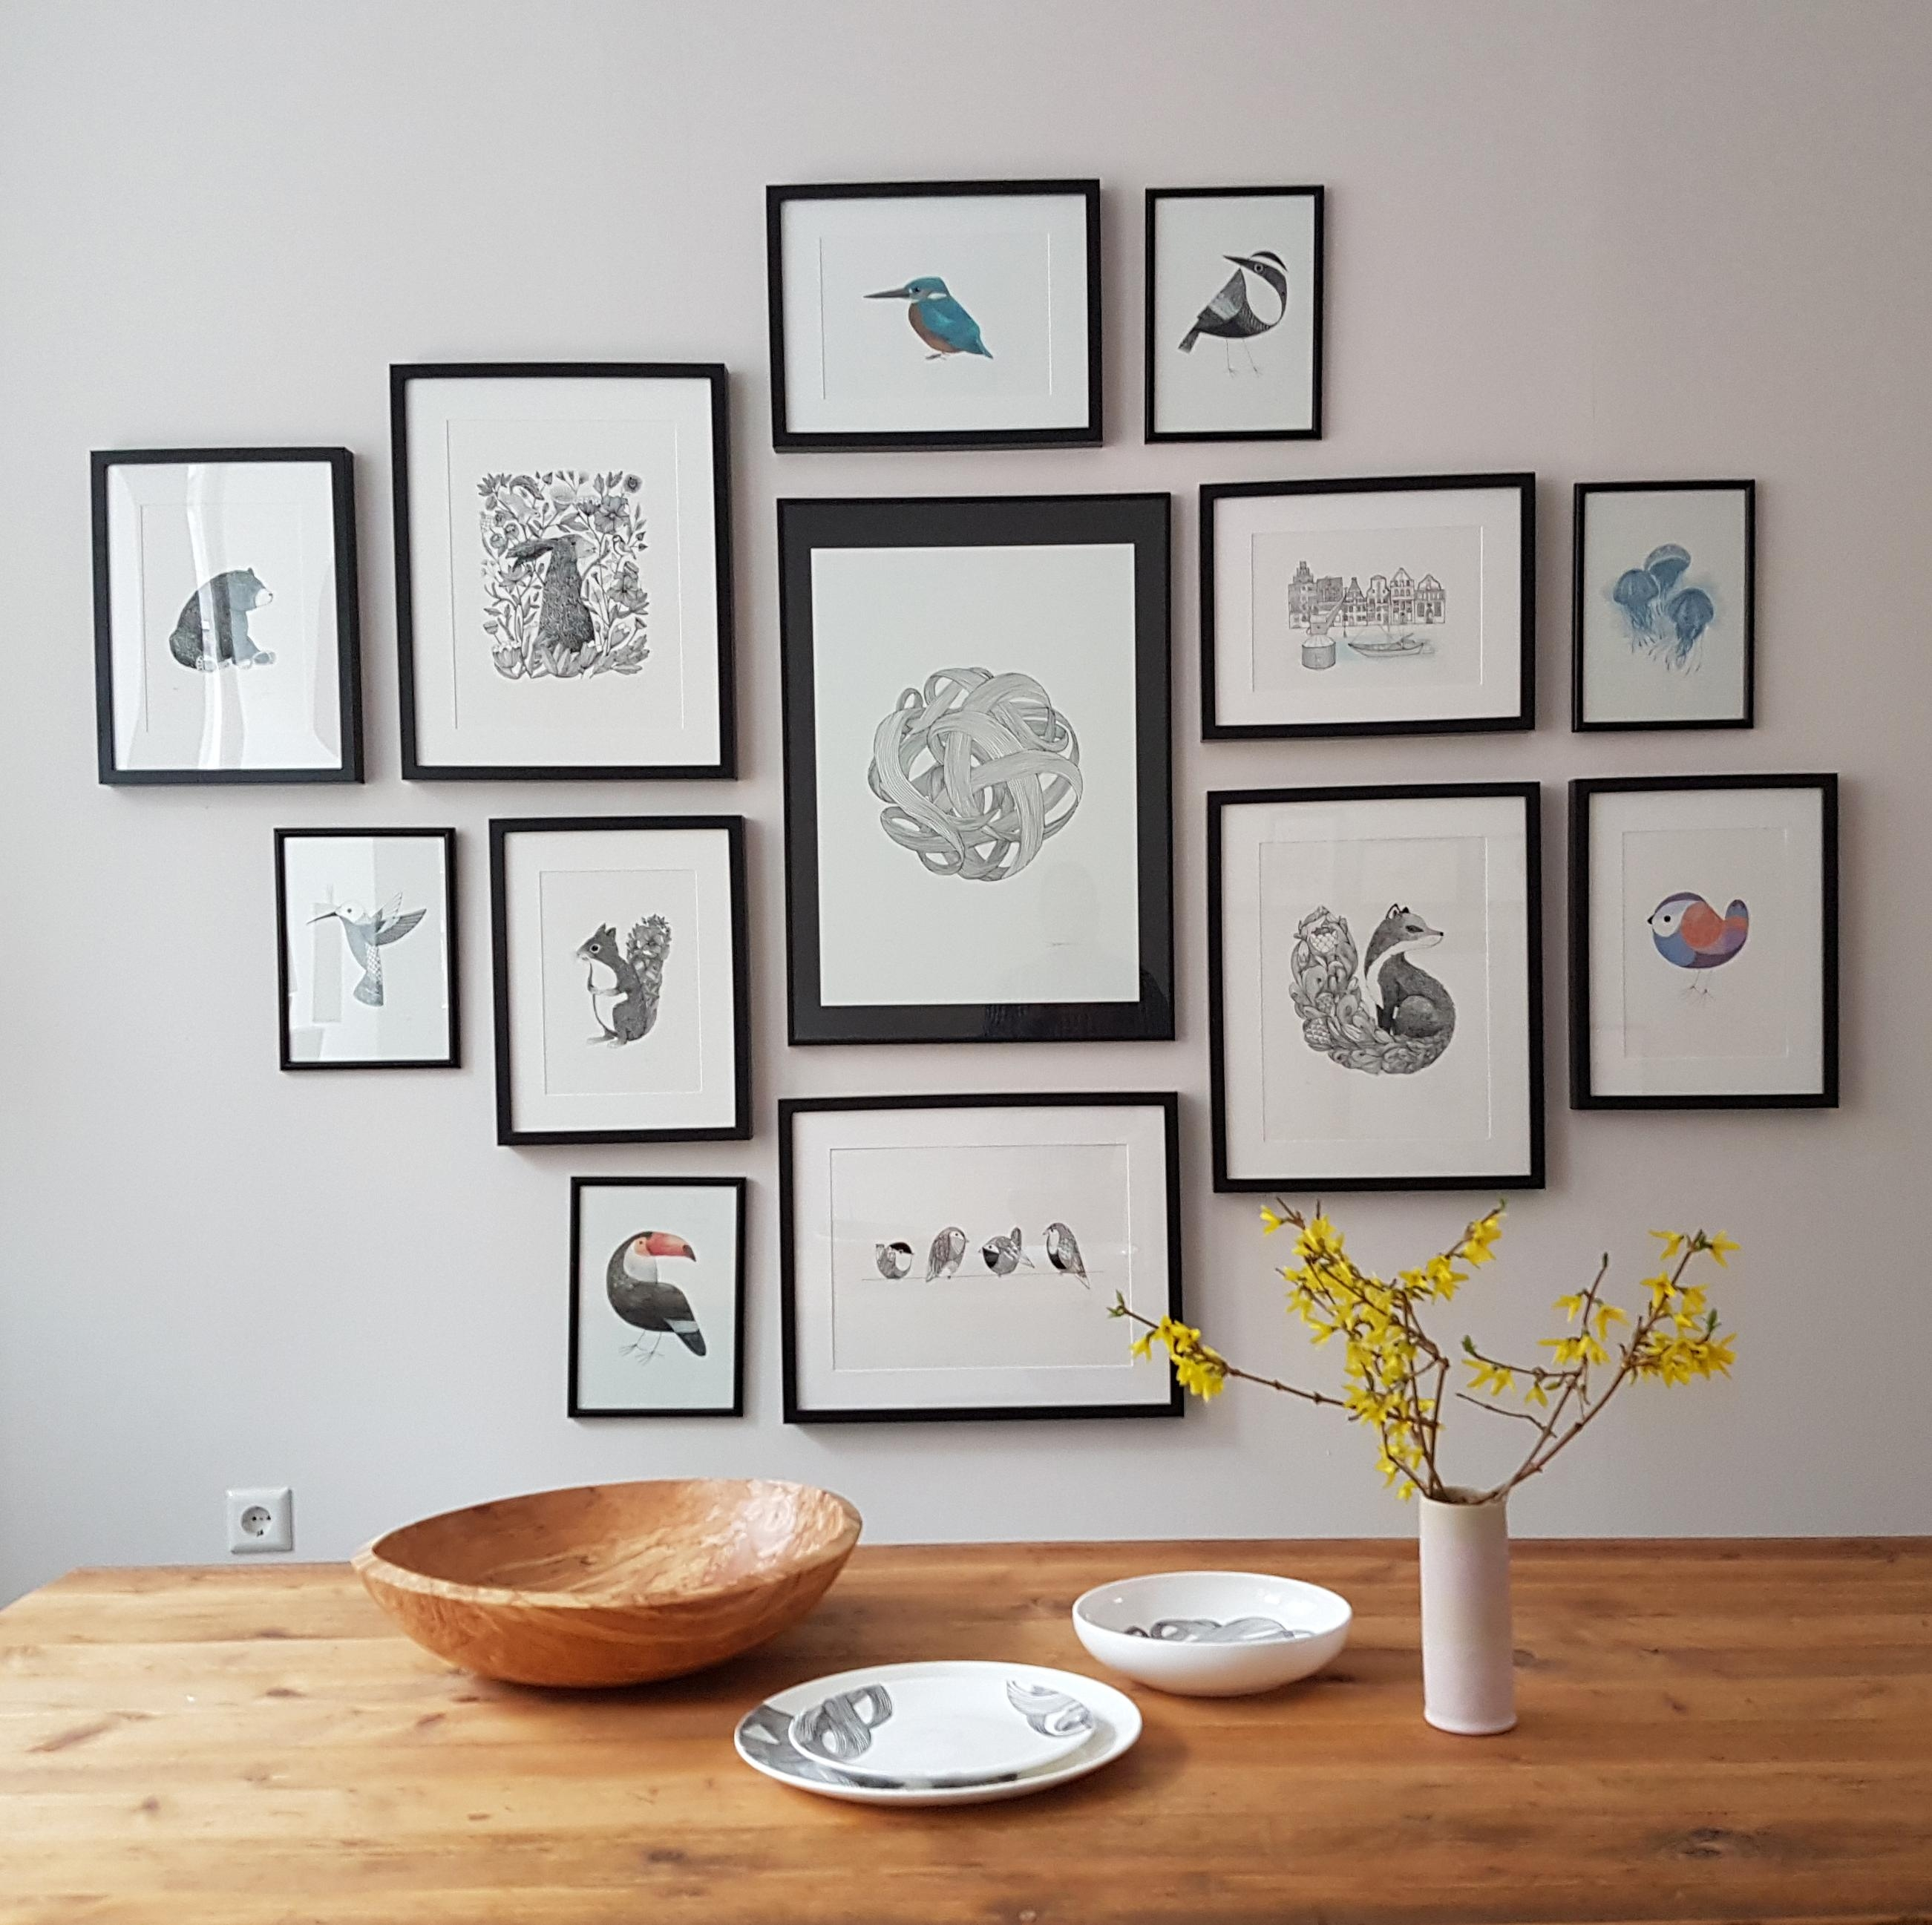 A wall in my shop. If in Lüneburg, stop on by! #stilllife #prints #Frame #gallerywall #prints